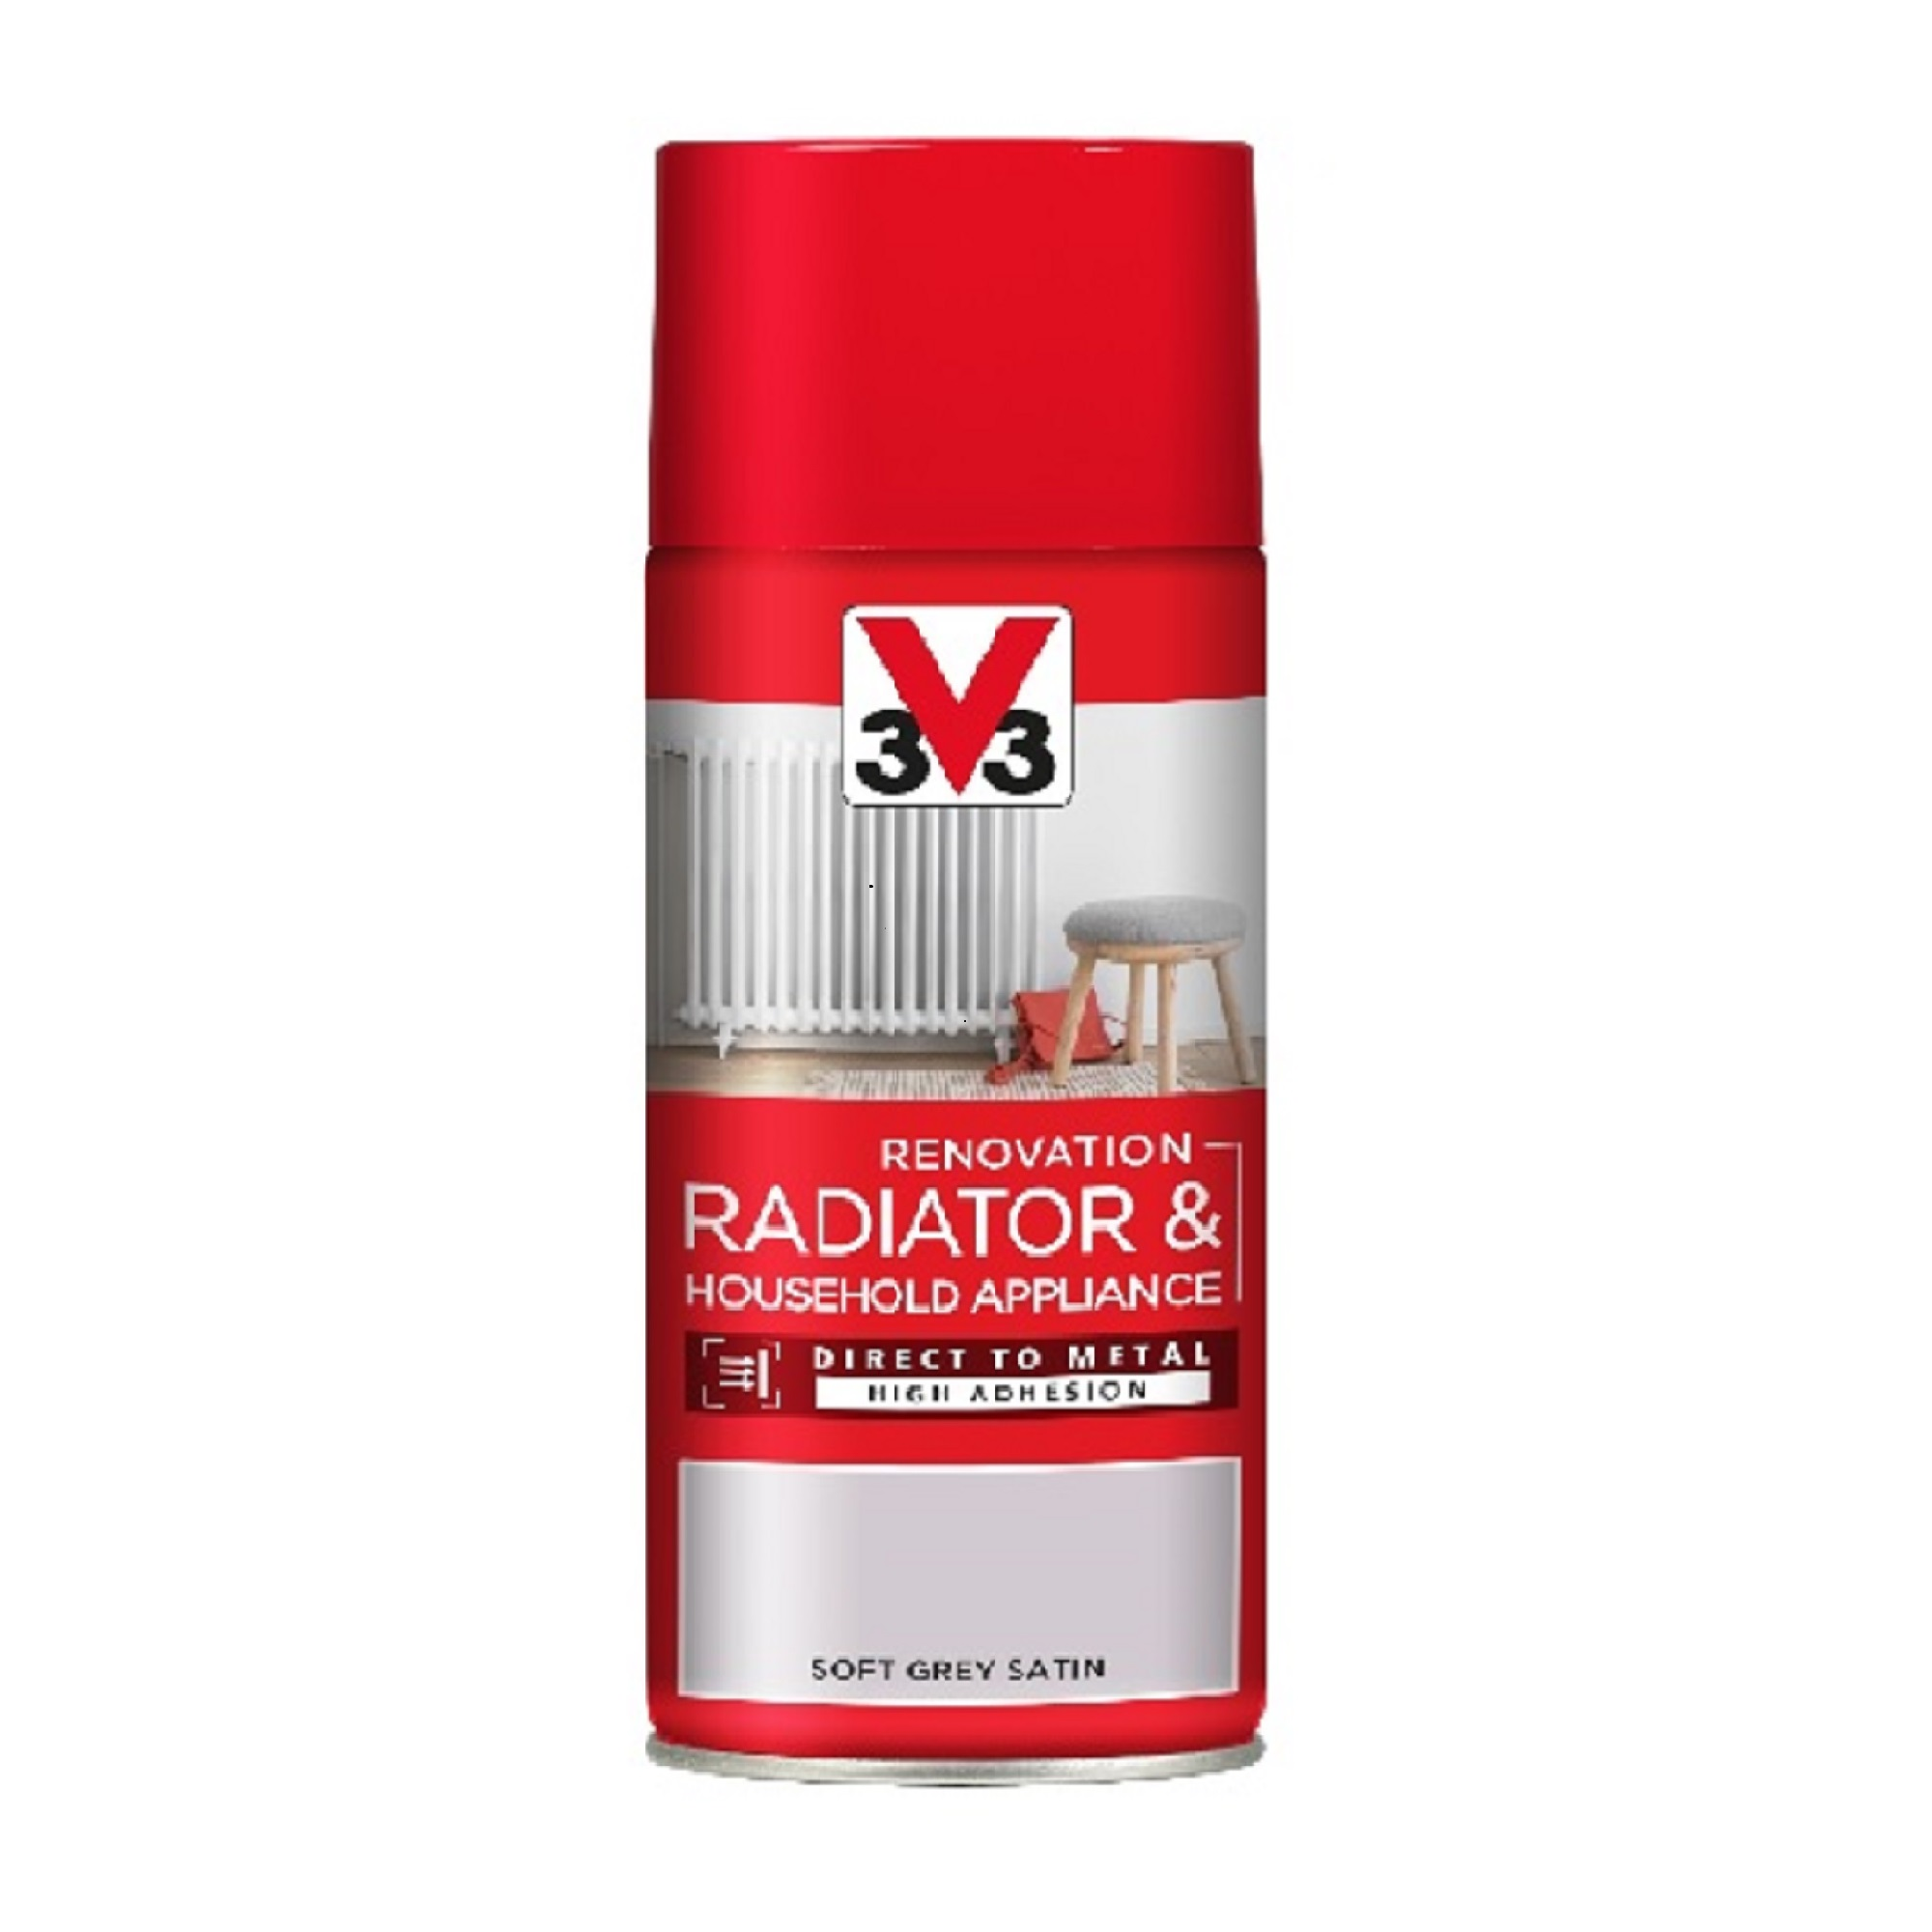 Radiator & Household Appliance Spray